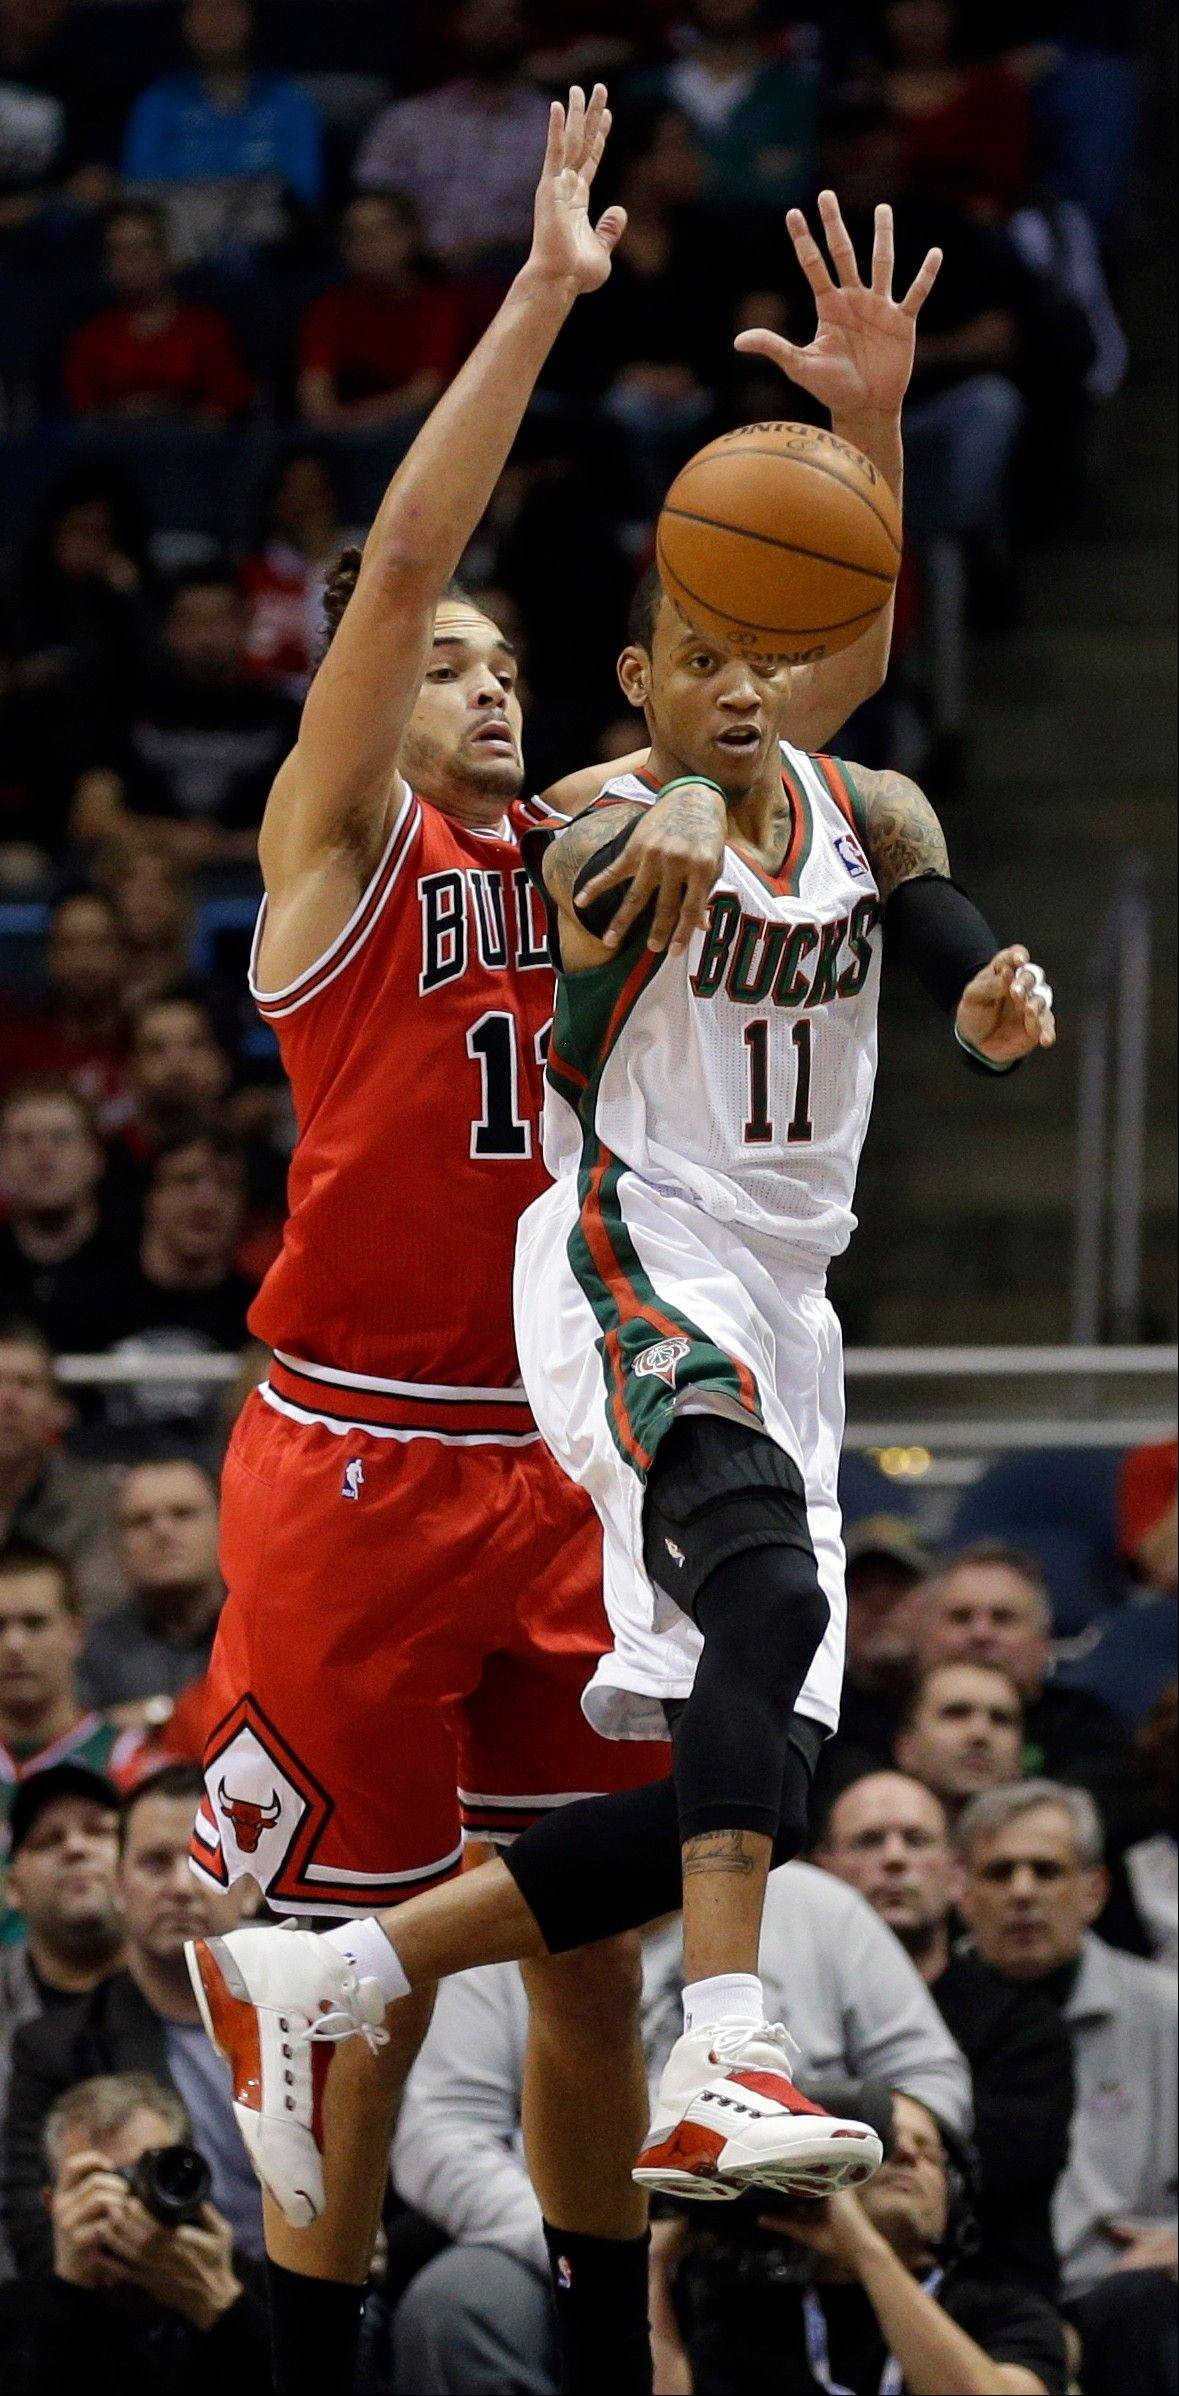 Bulls center Joakim Noah has missed the past three games trying to get plantar fasciitis in his foot under control.